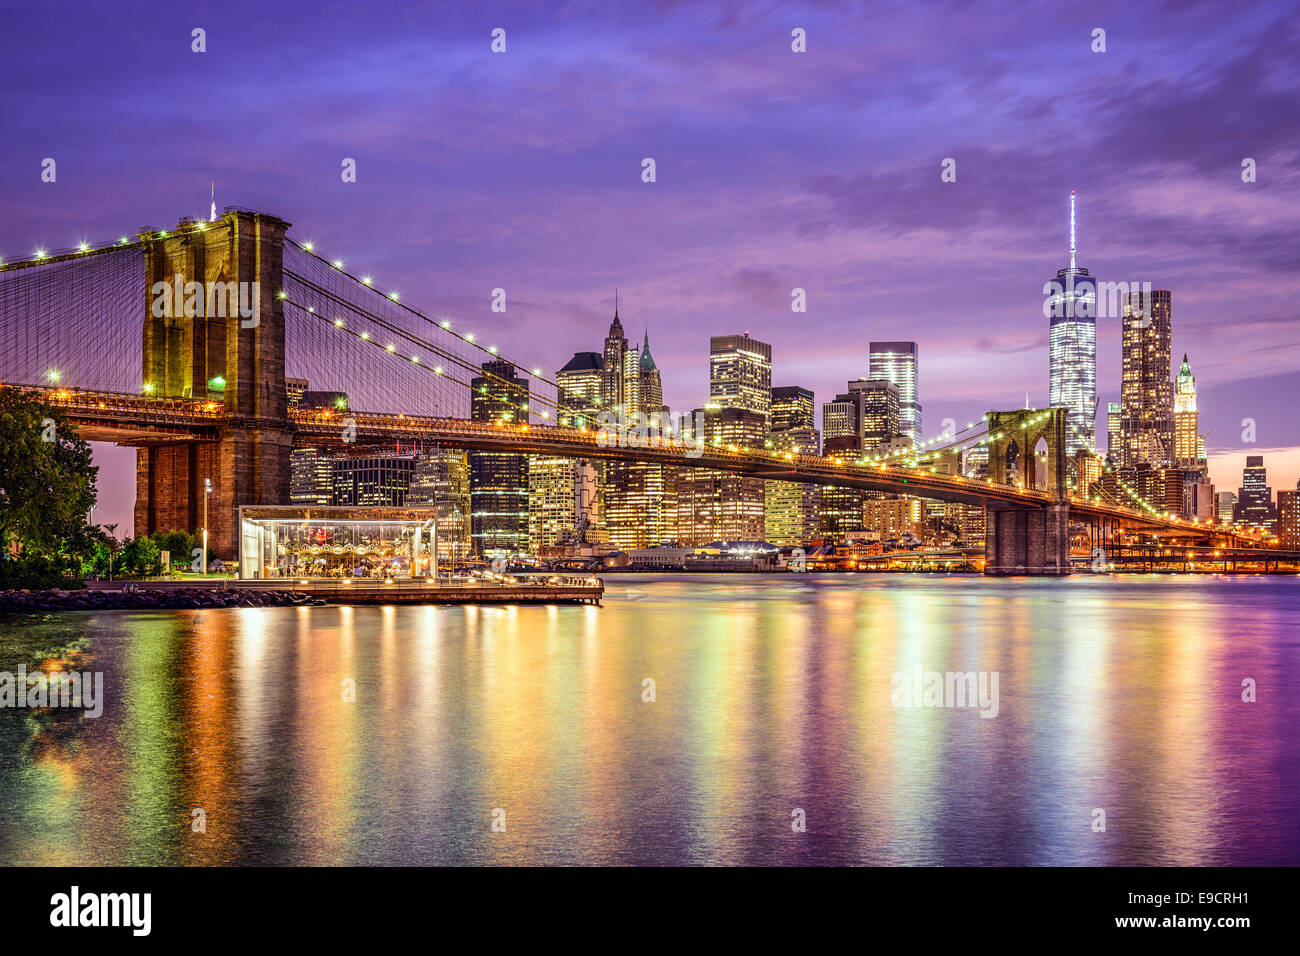 Bilder Von New York New York Stockfotos And New York Bilder Alamy